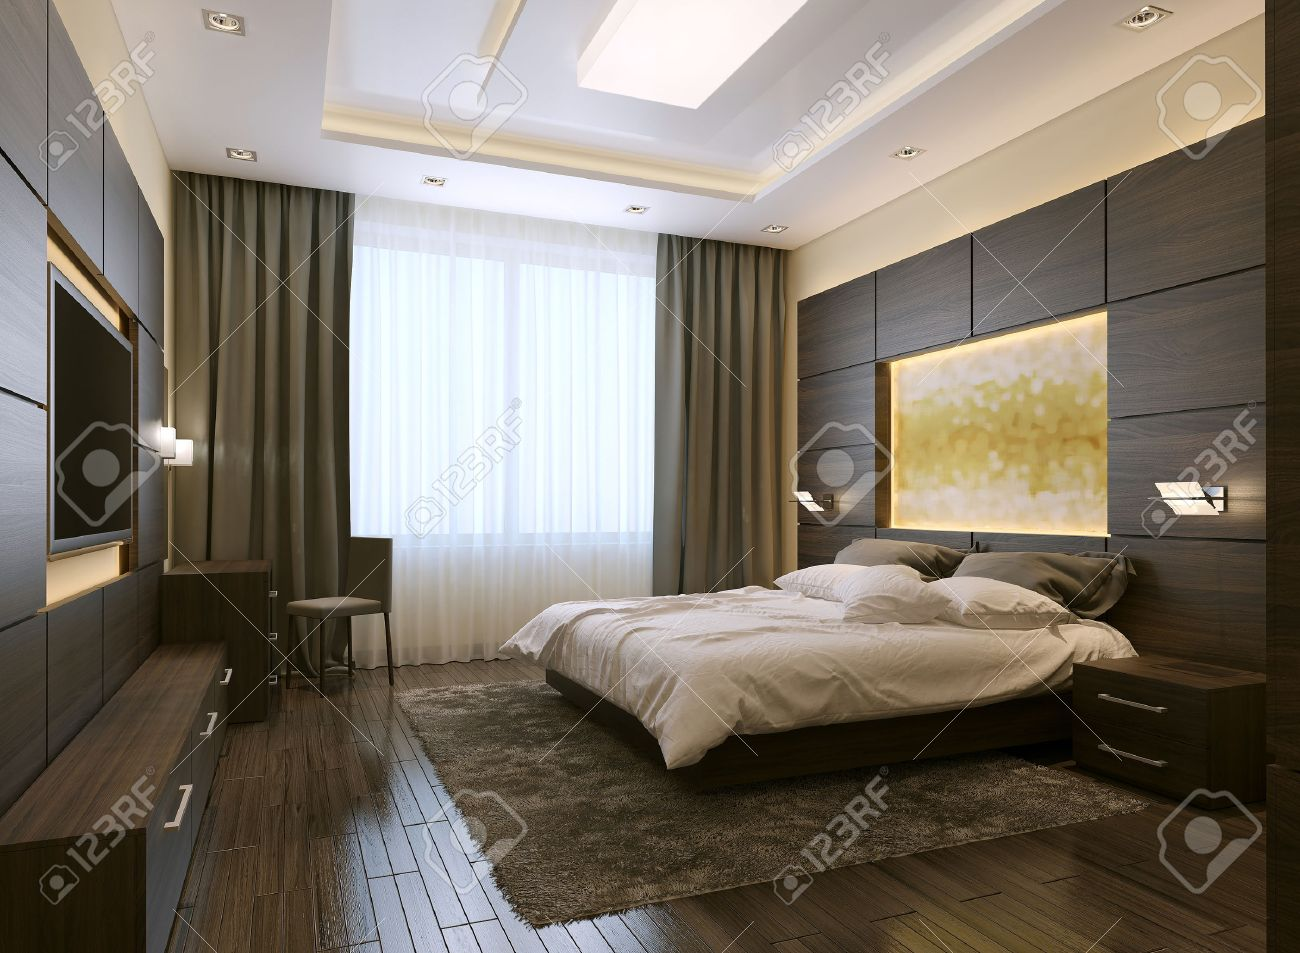 Bedroom modern style, 3d images - 47512711